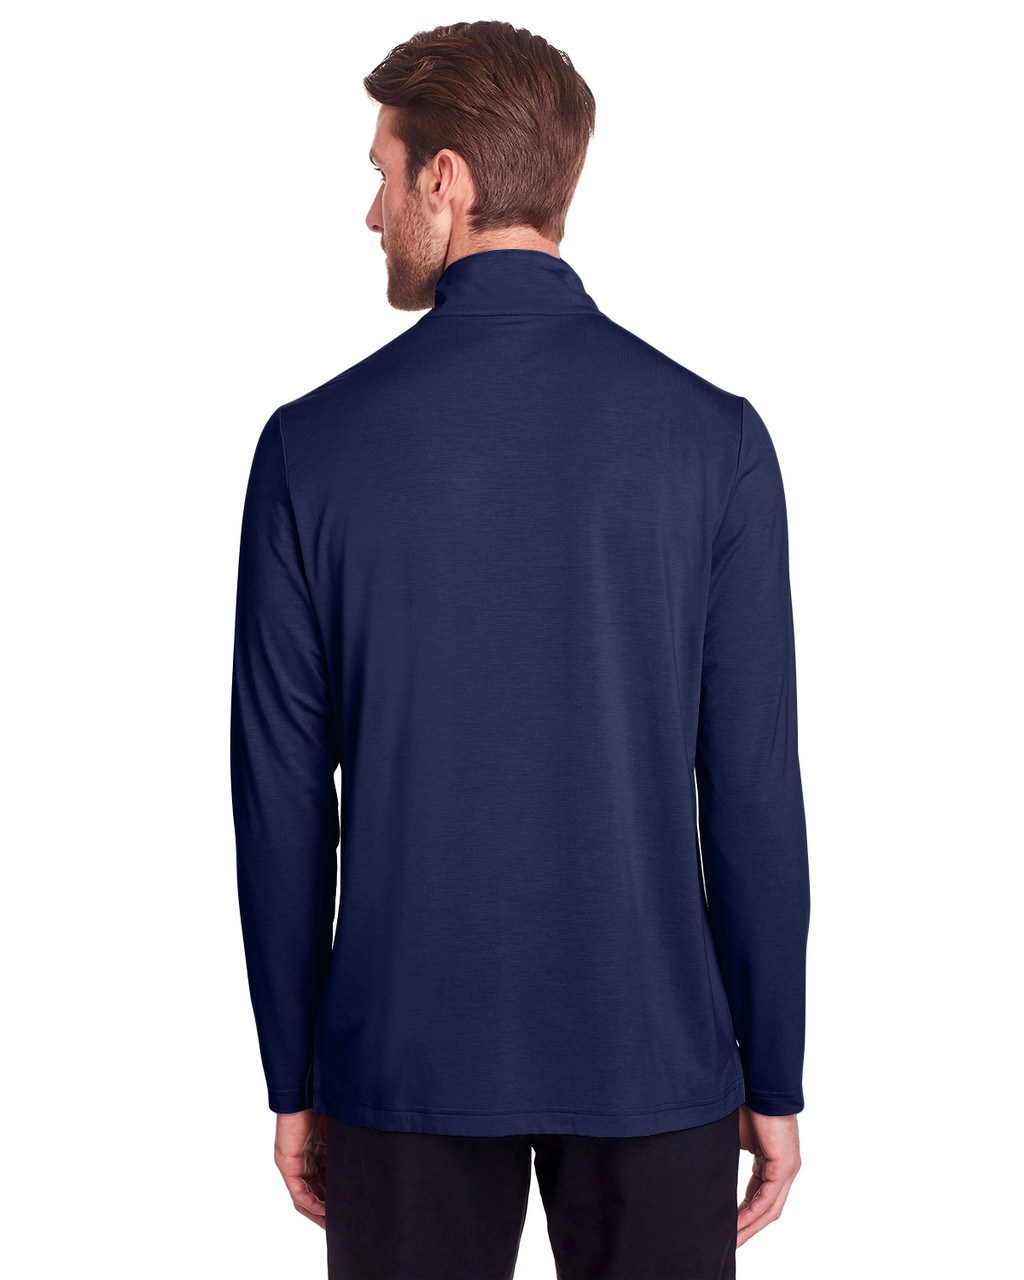 Classic Navy - Back, NE400 North End Men's Jaq Snap-Up Stretch Performance Pullover Long Sleeve Shirt | BlankClothing.ca